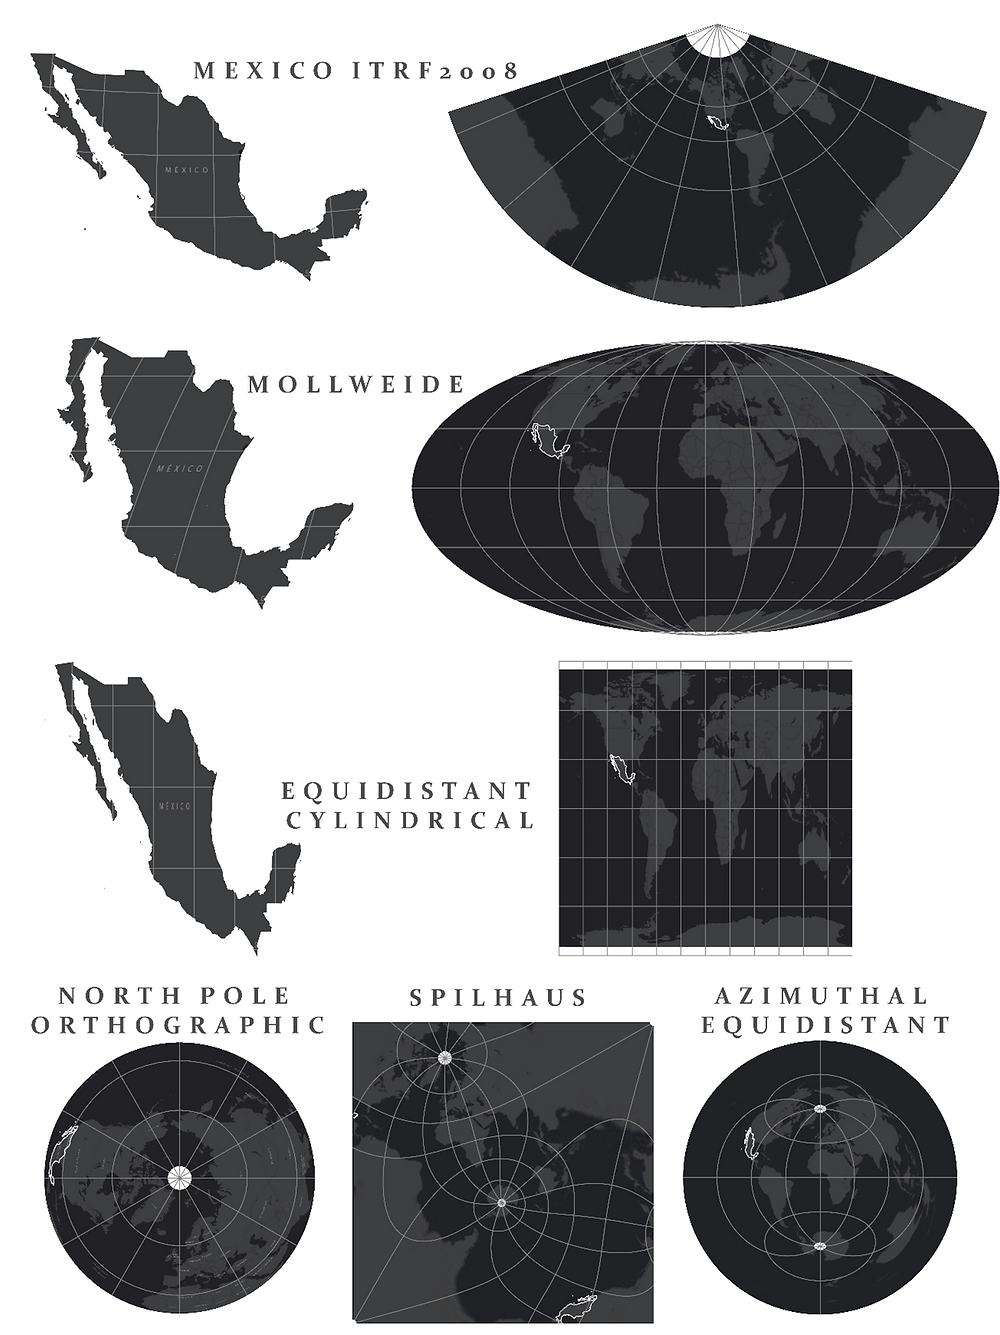 Figure 3: A series of different projections, with Mexico highlighted to demonstrate distortions that occur. From top to bottom, then left to right: Mexico ITRF2008, Mollweide, Equidistant Cylindrical, North Pole Orthographic, Spilhaus, Azimuthal Equidistant.